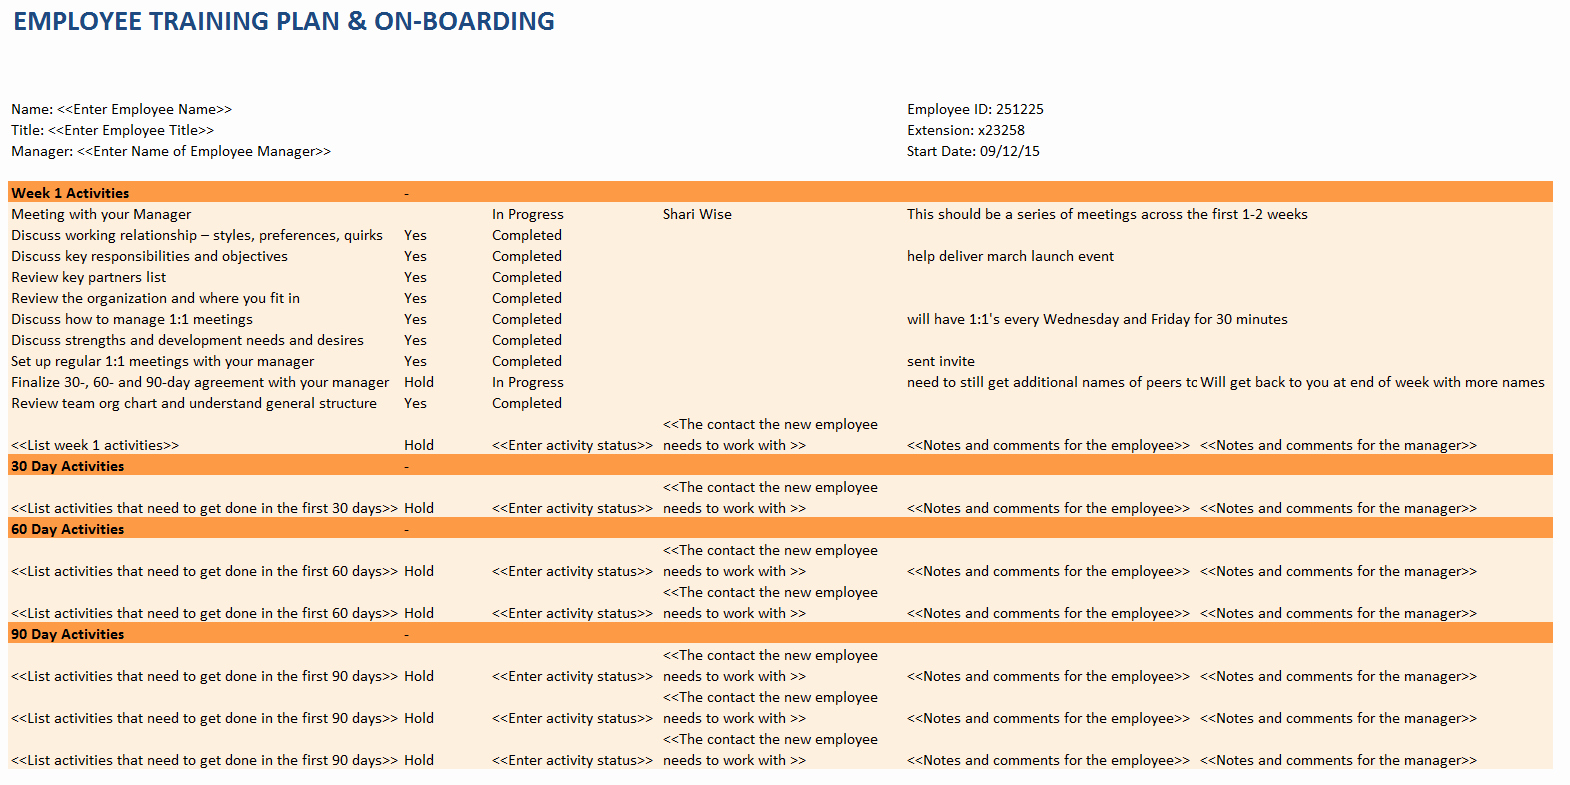 Employee Boarding Process Tips and tools